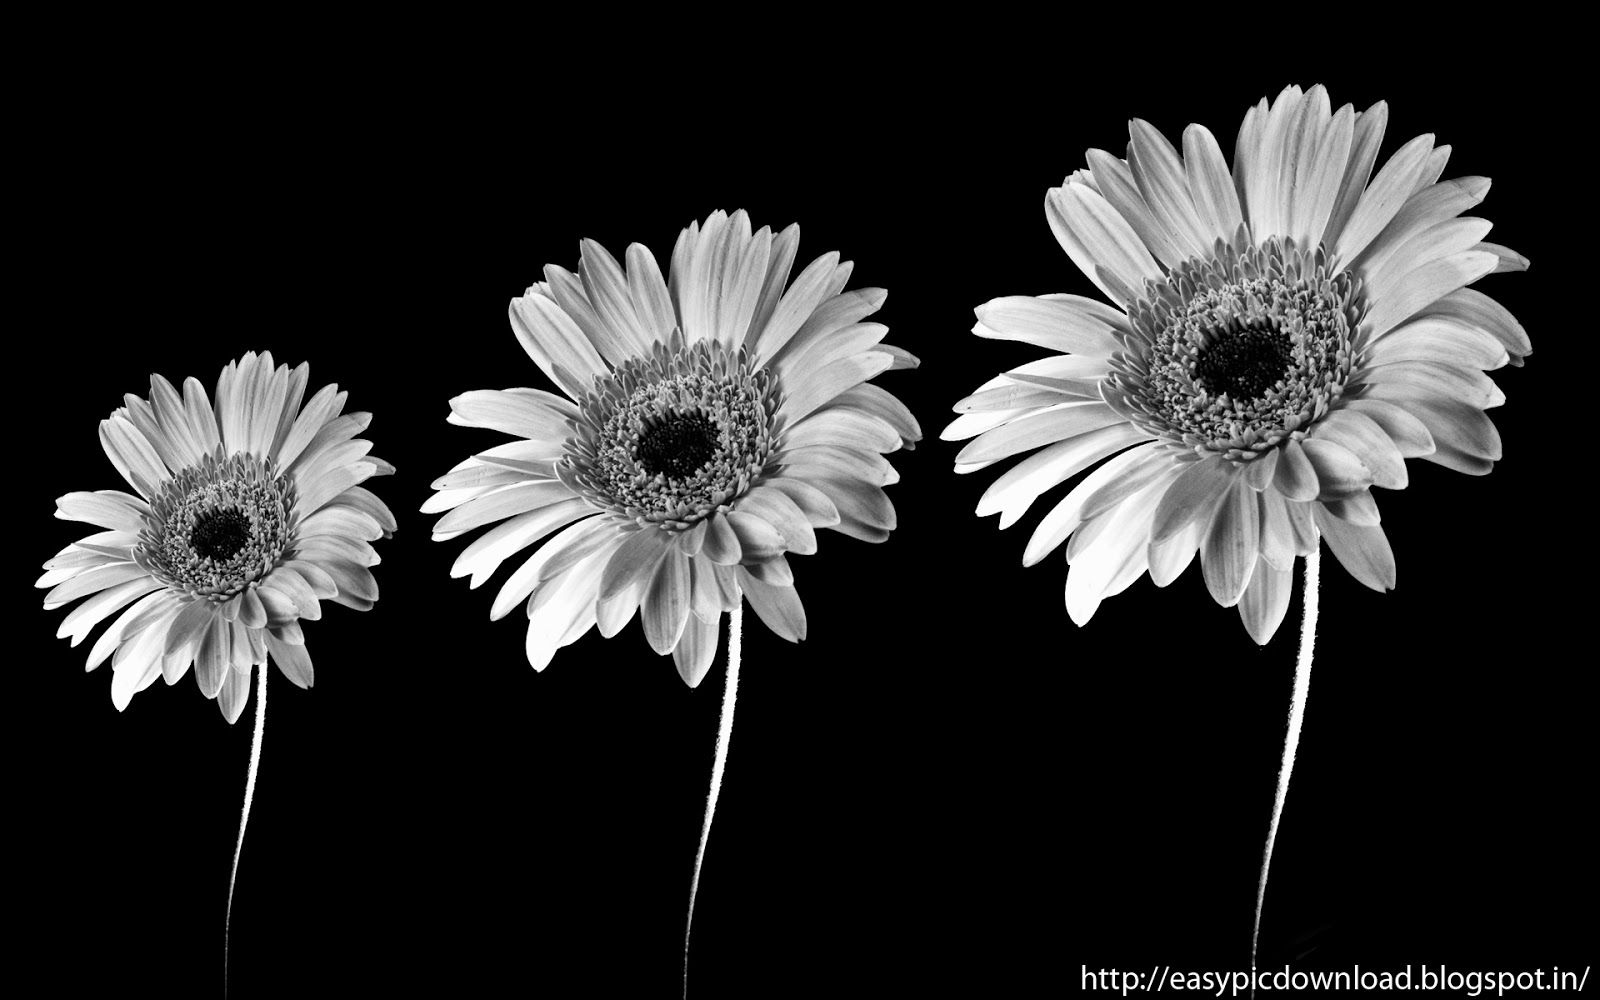 Black And White Sun Flower Wallpaper   Easy Pic Download 1600x1000